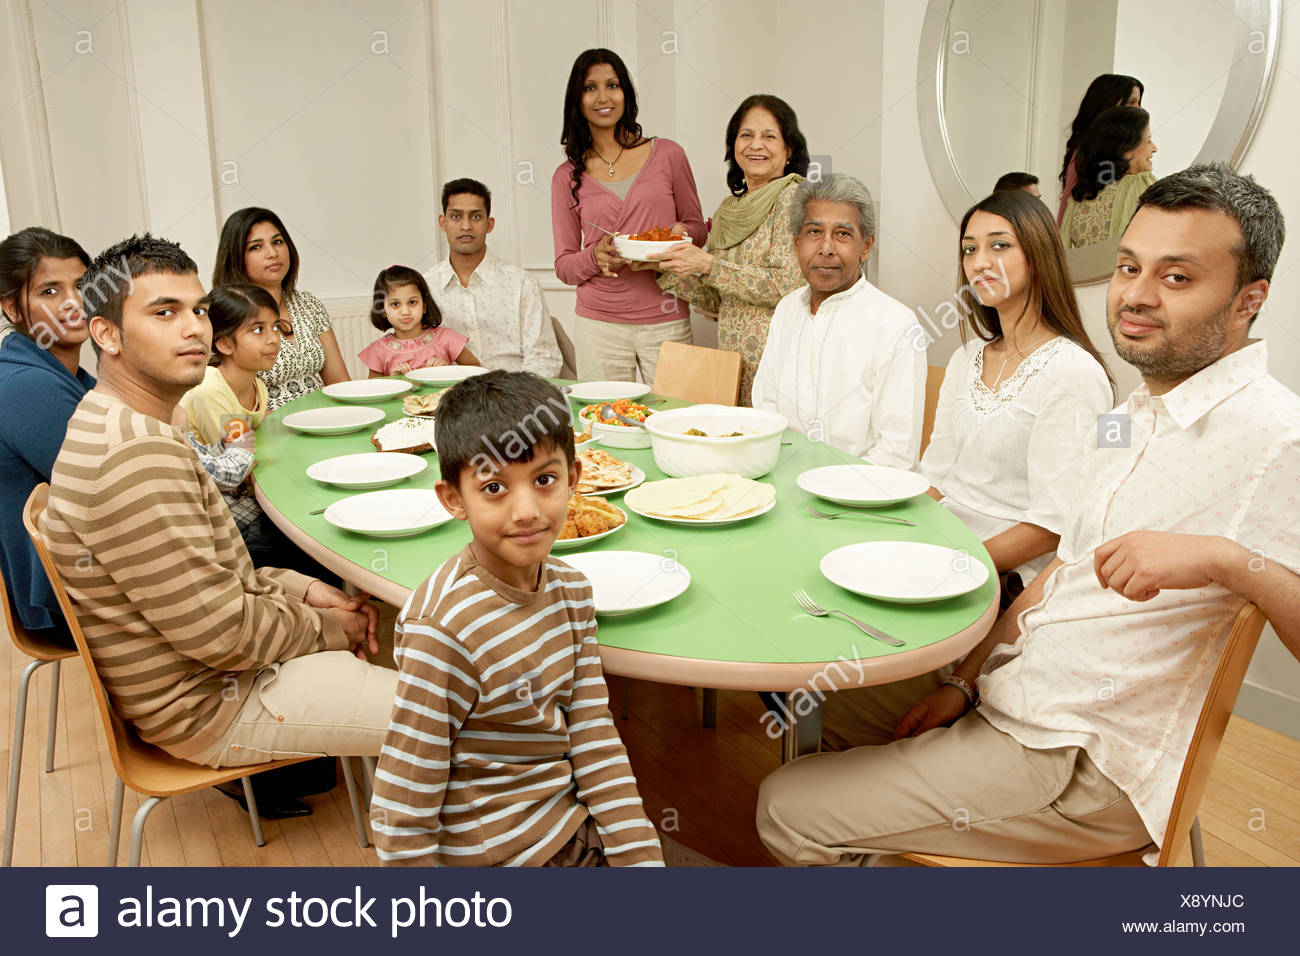 Large Family At Dining Table   Stock Image